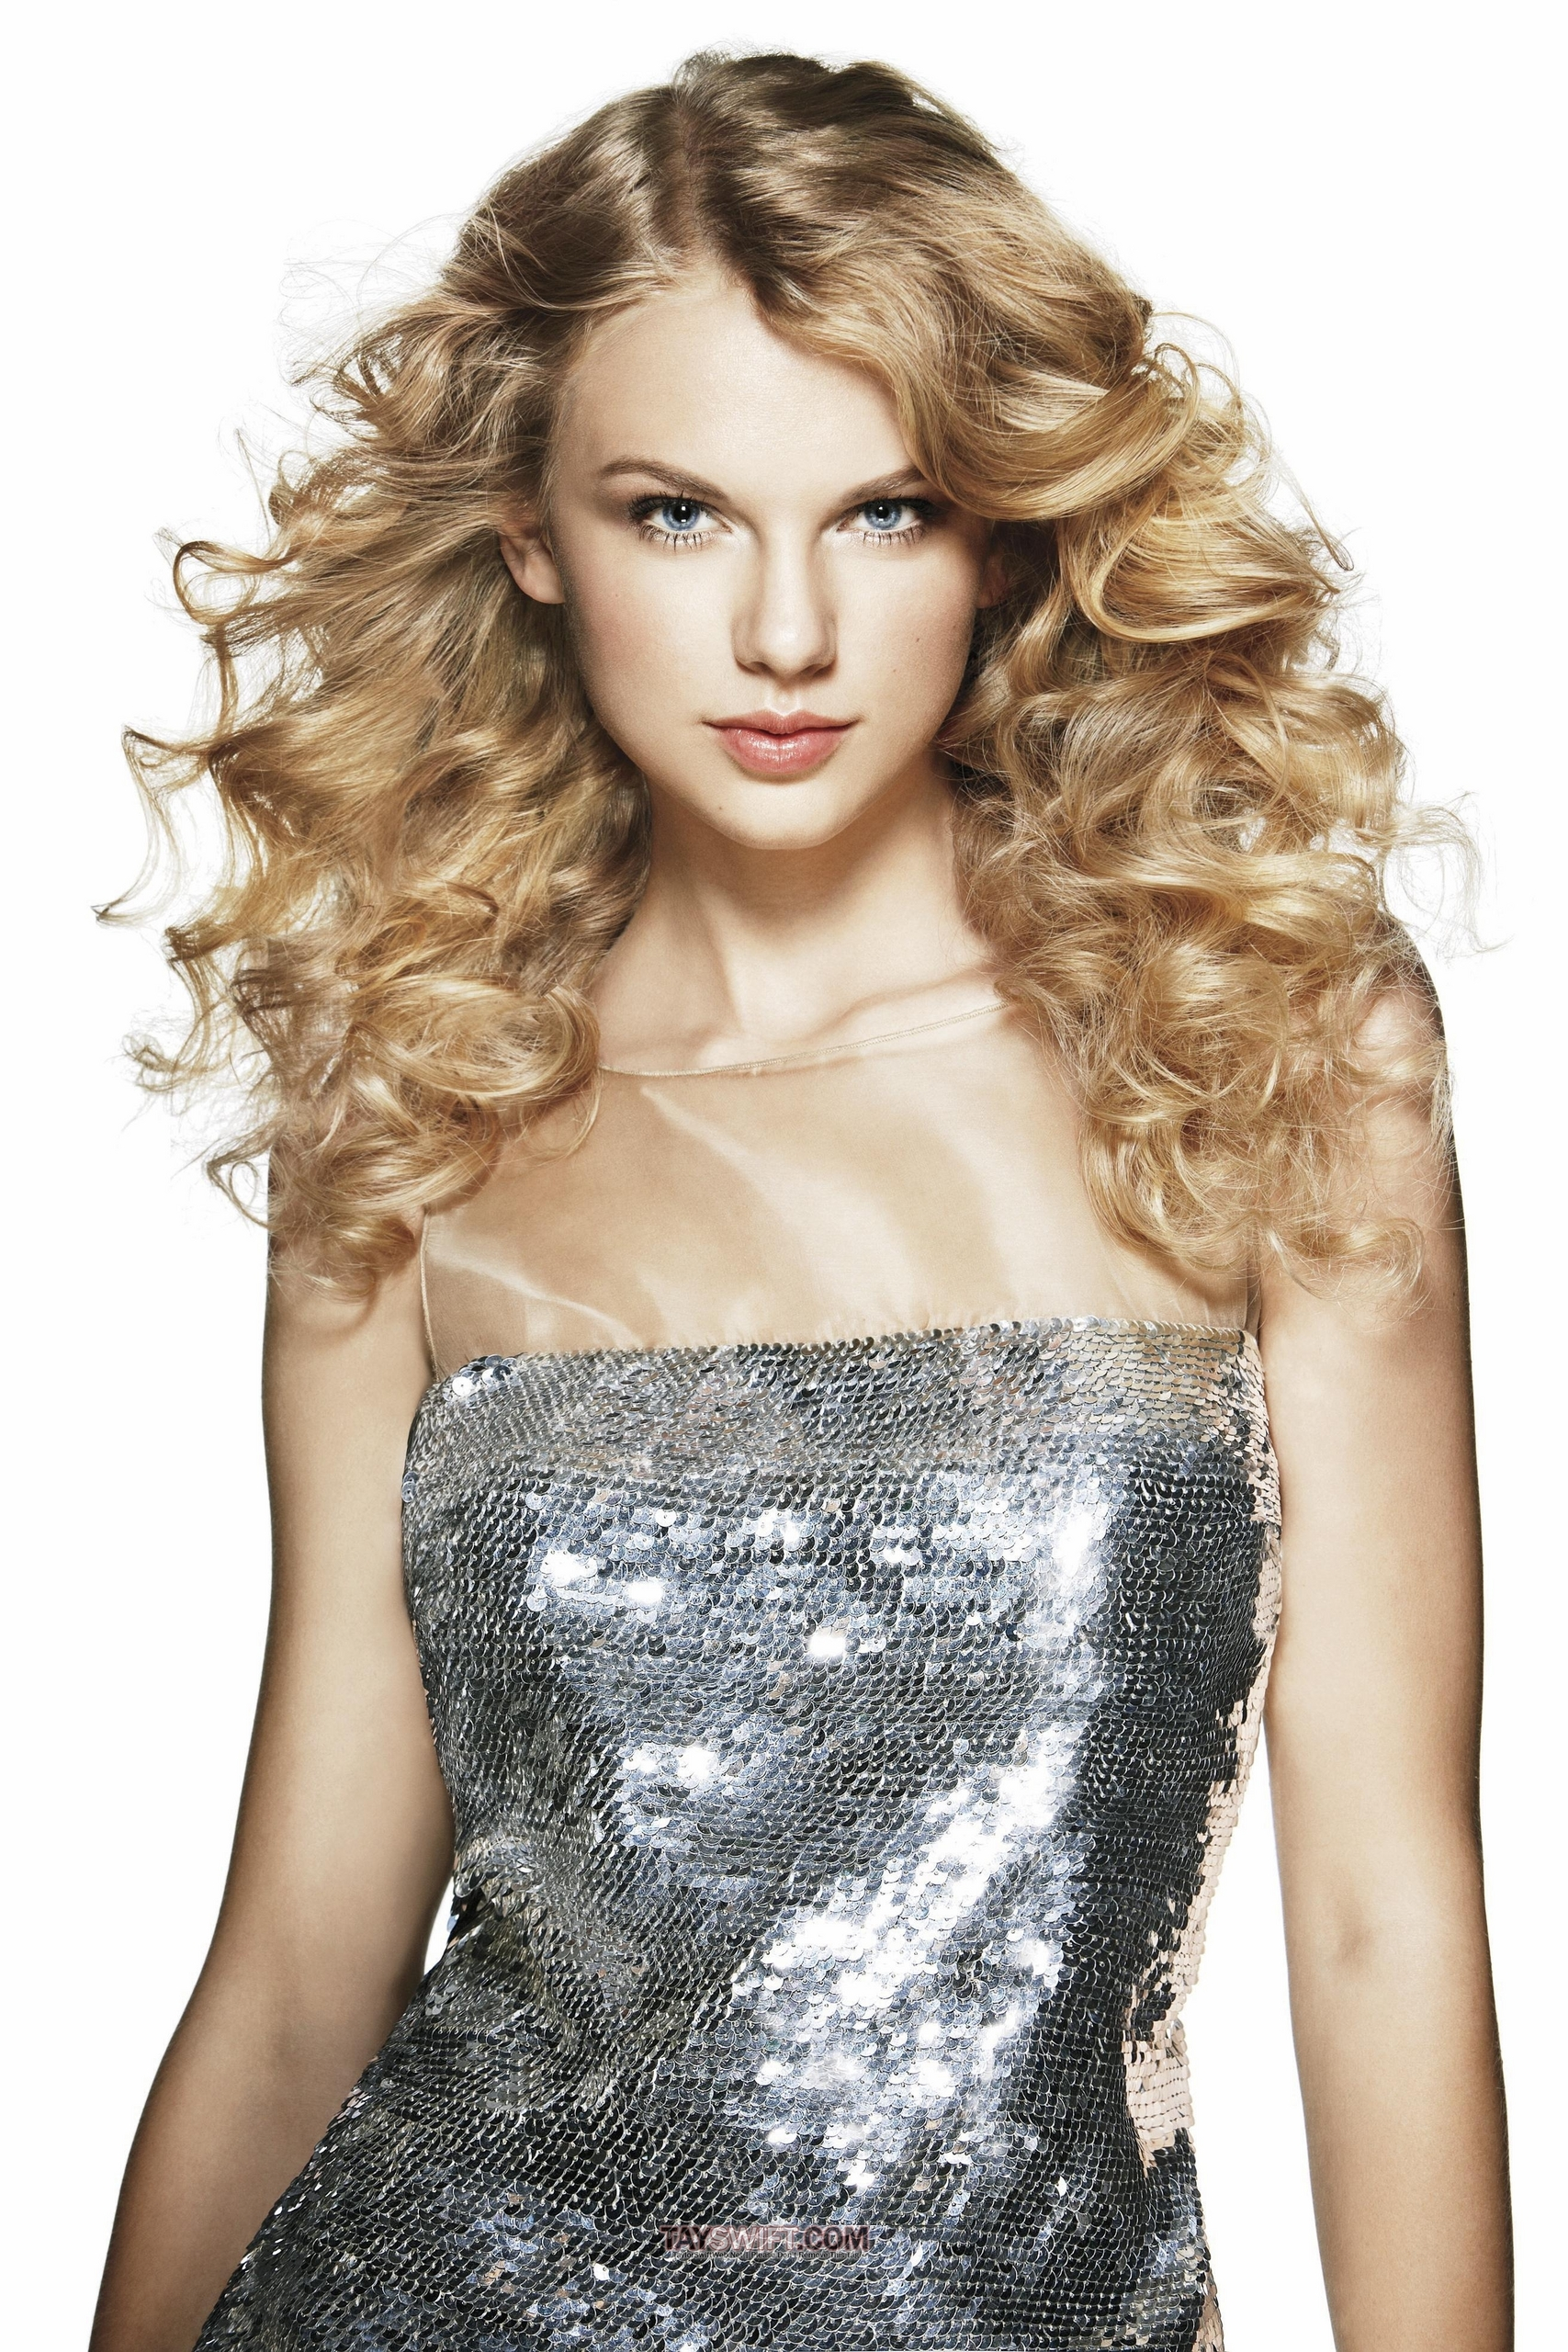 Taylor cepat, swift - ELLE photoshoot HQ